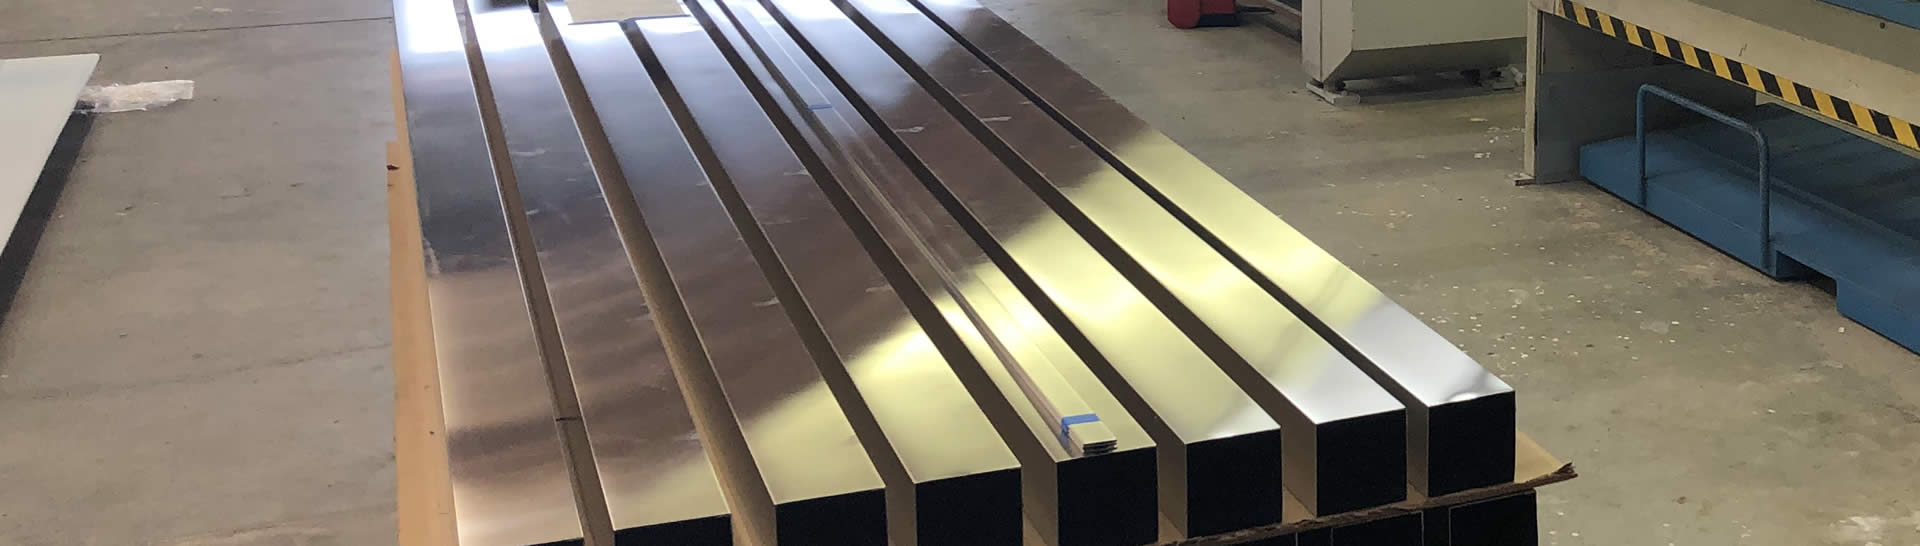 Metal supports laying side by side